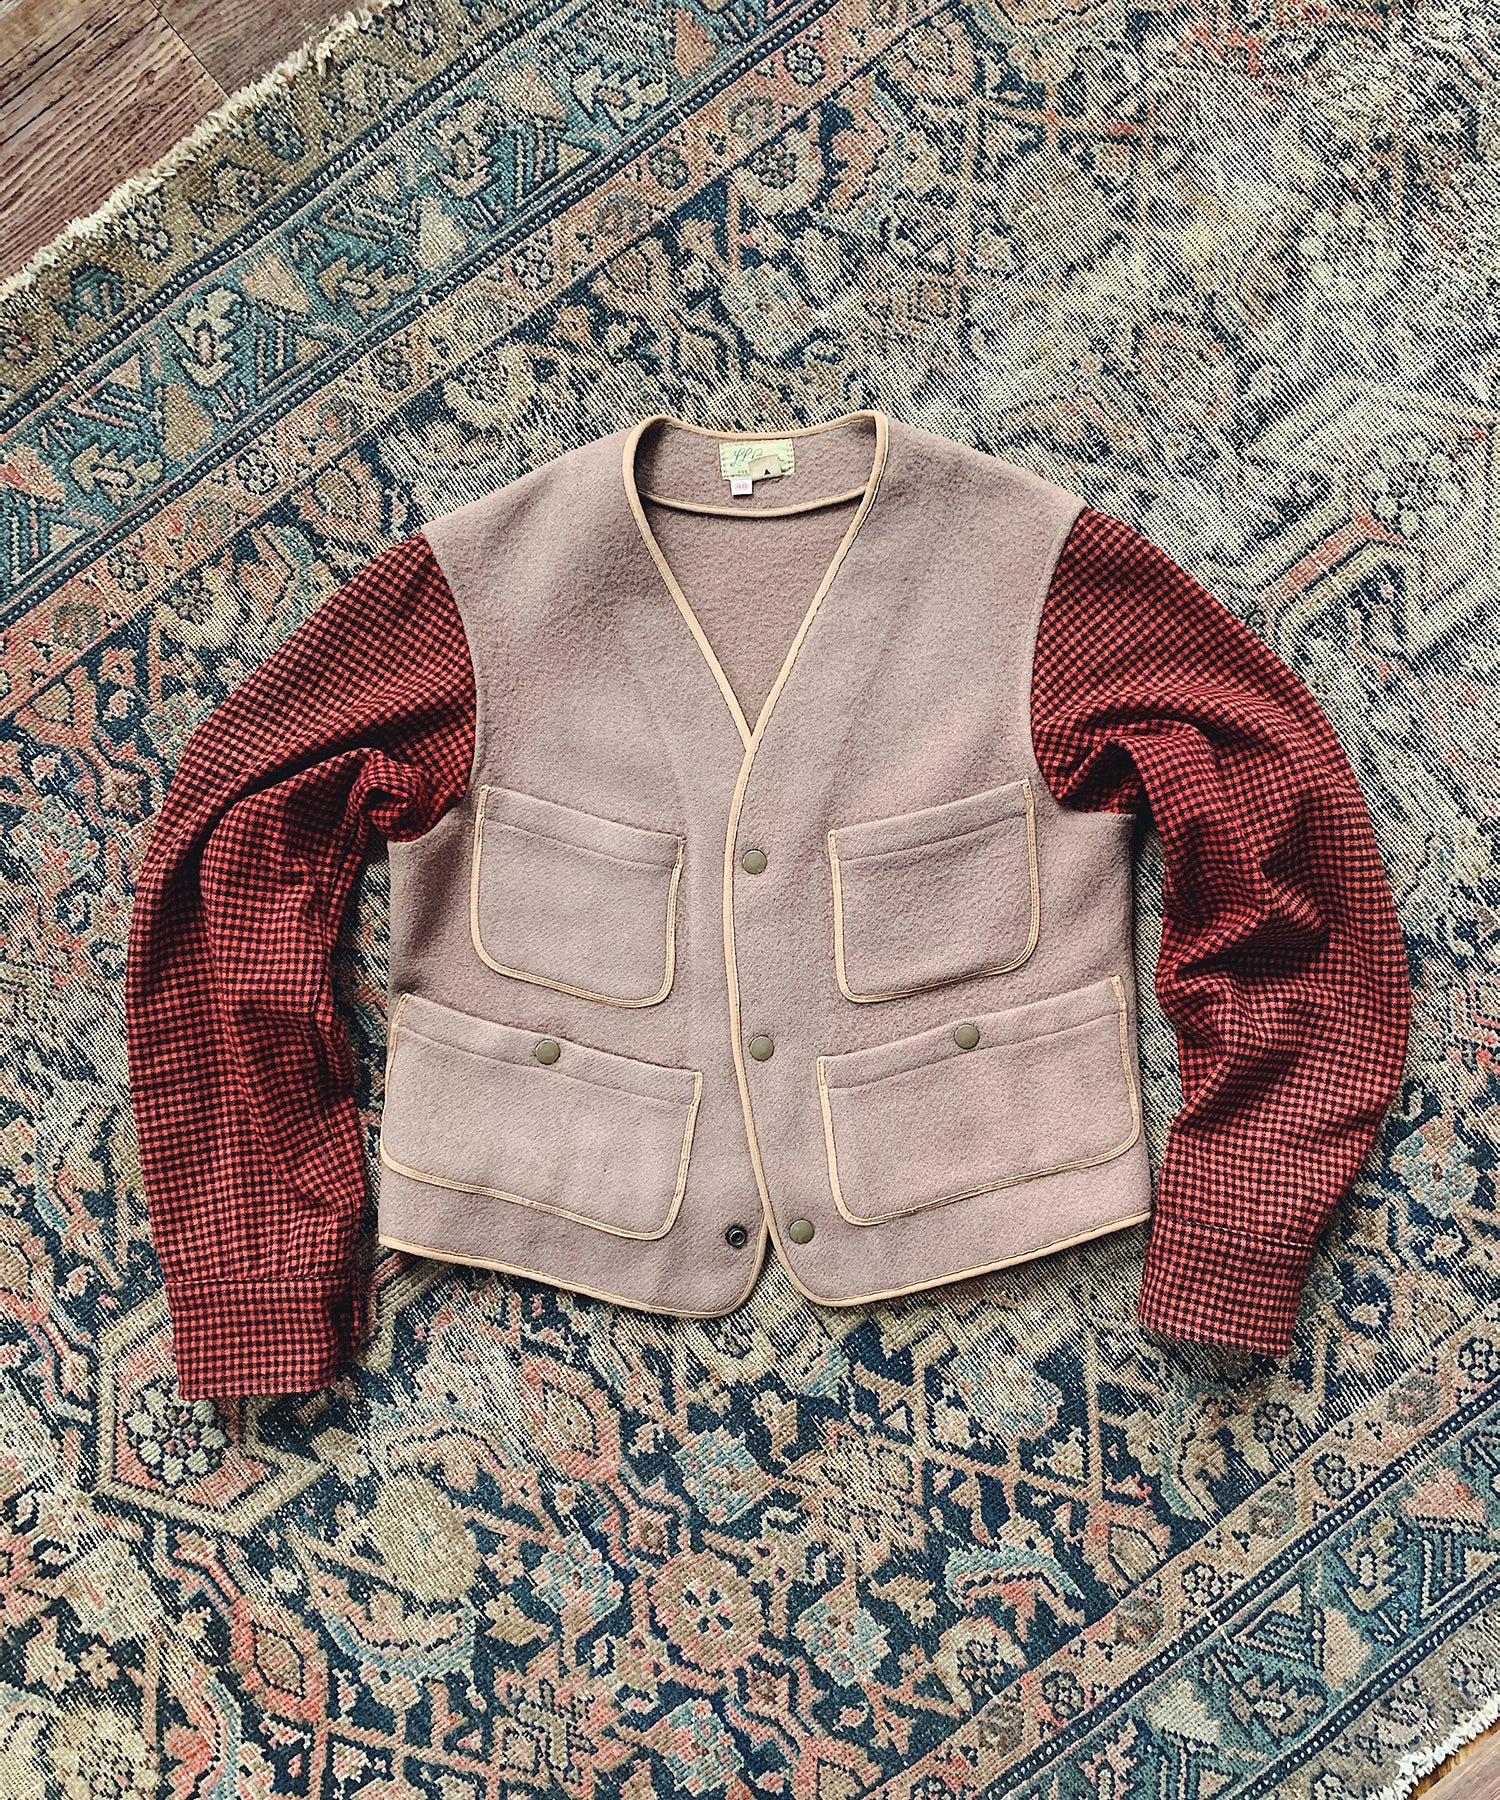 Item #24 -  Todd Snyder x Wooden Sleepers 1960's Sport Vest in Brown - SOLD OUT